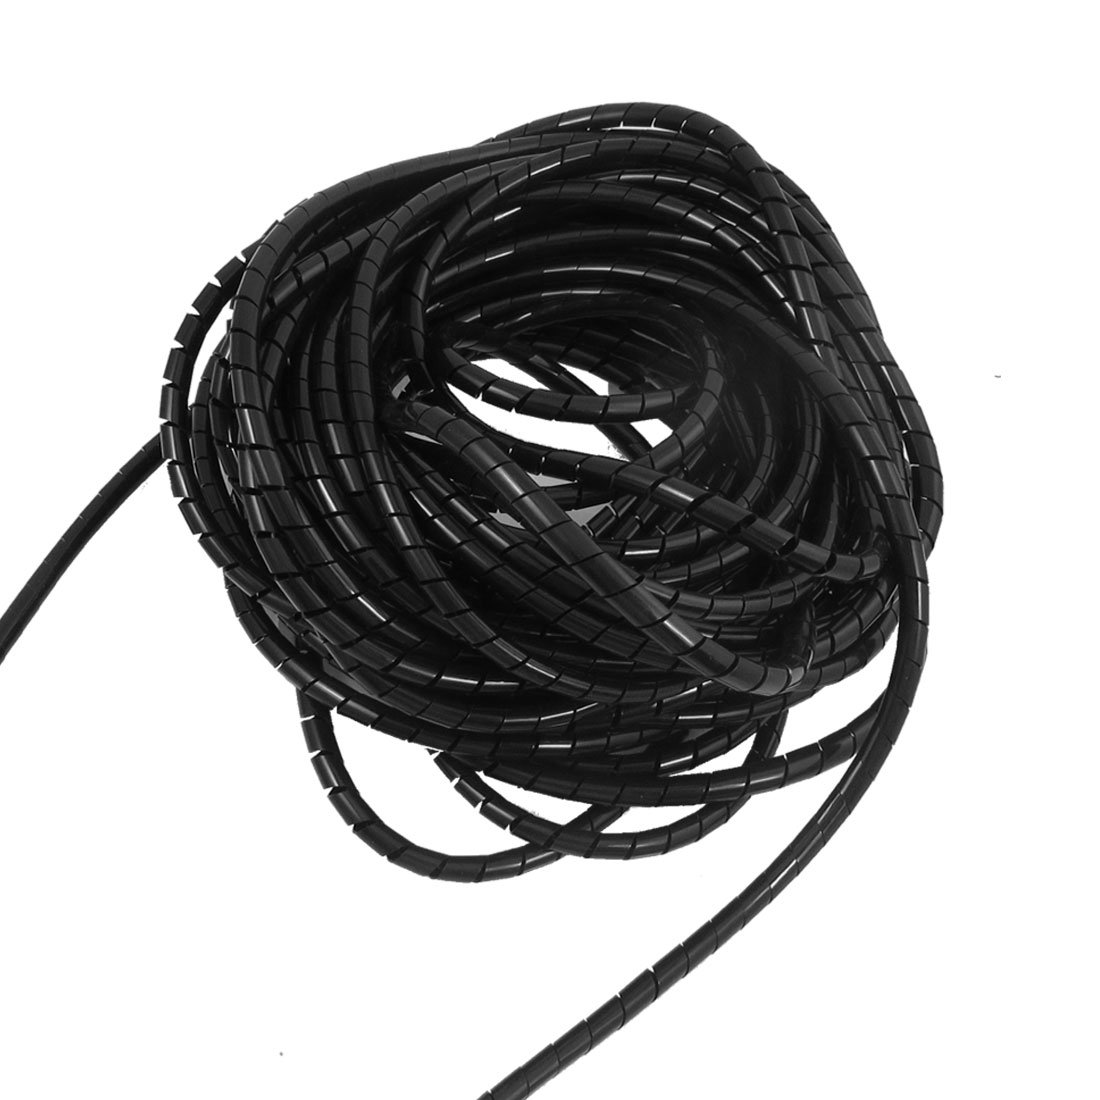 MYLB-6mm Outside Dia 6.4M PE Polyethylene Spiral Cable Wire Wrap Tube Black free shipping 10m dia 20mm spiral cable wire wrap tube wrap tube cordon spiral bands spiral wrapping pe beam line protective